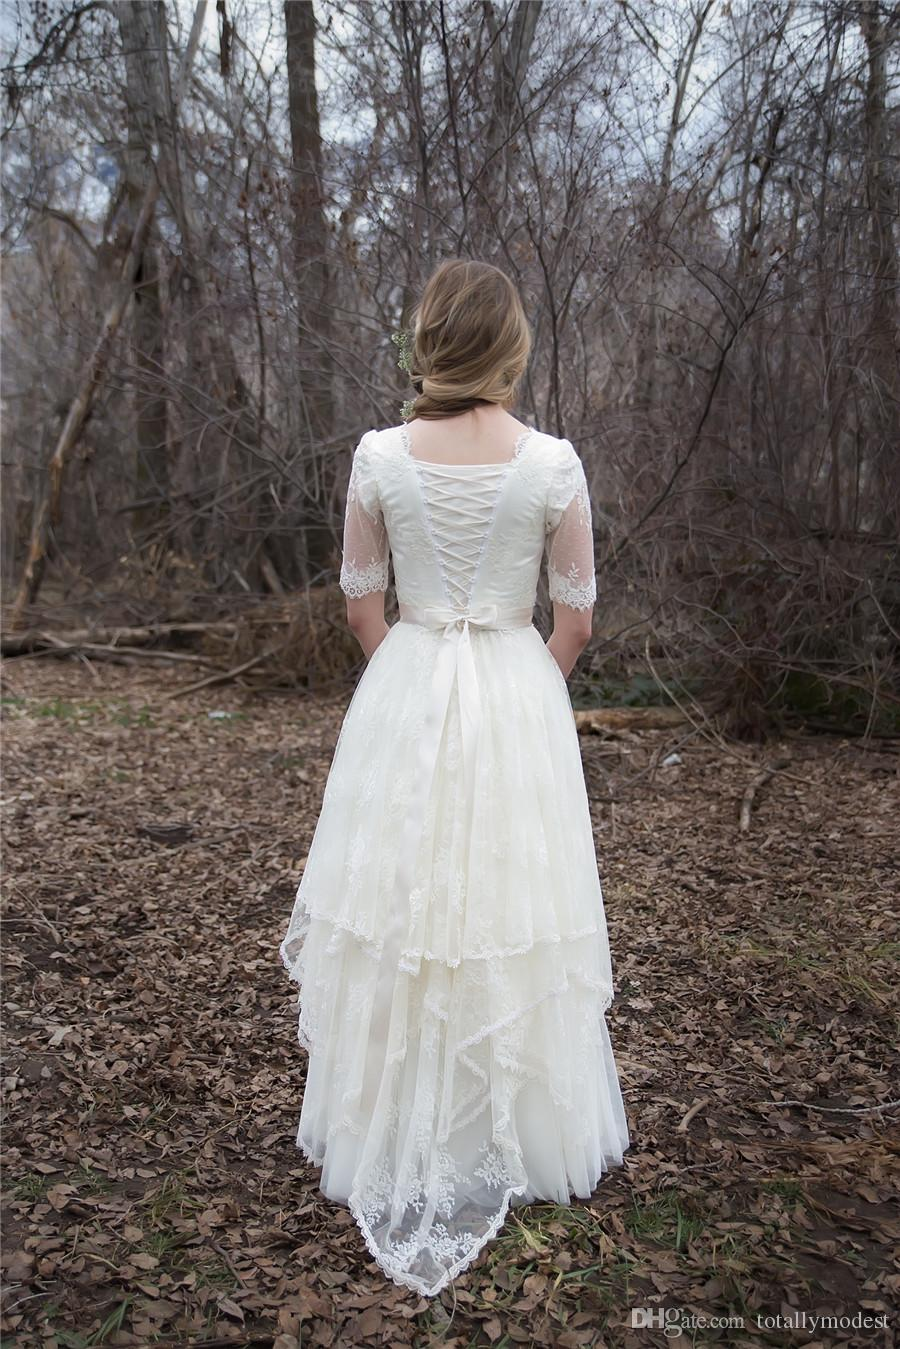 Vintage Lace A-line Modest Wedding Dresses With Sleeves Bohemian Wedding Gowns Lace-Up Back Floor Length Rustic Bridal Wedding Dress Plus